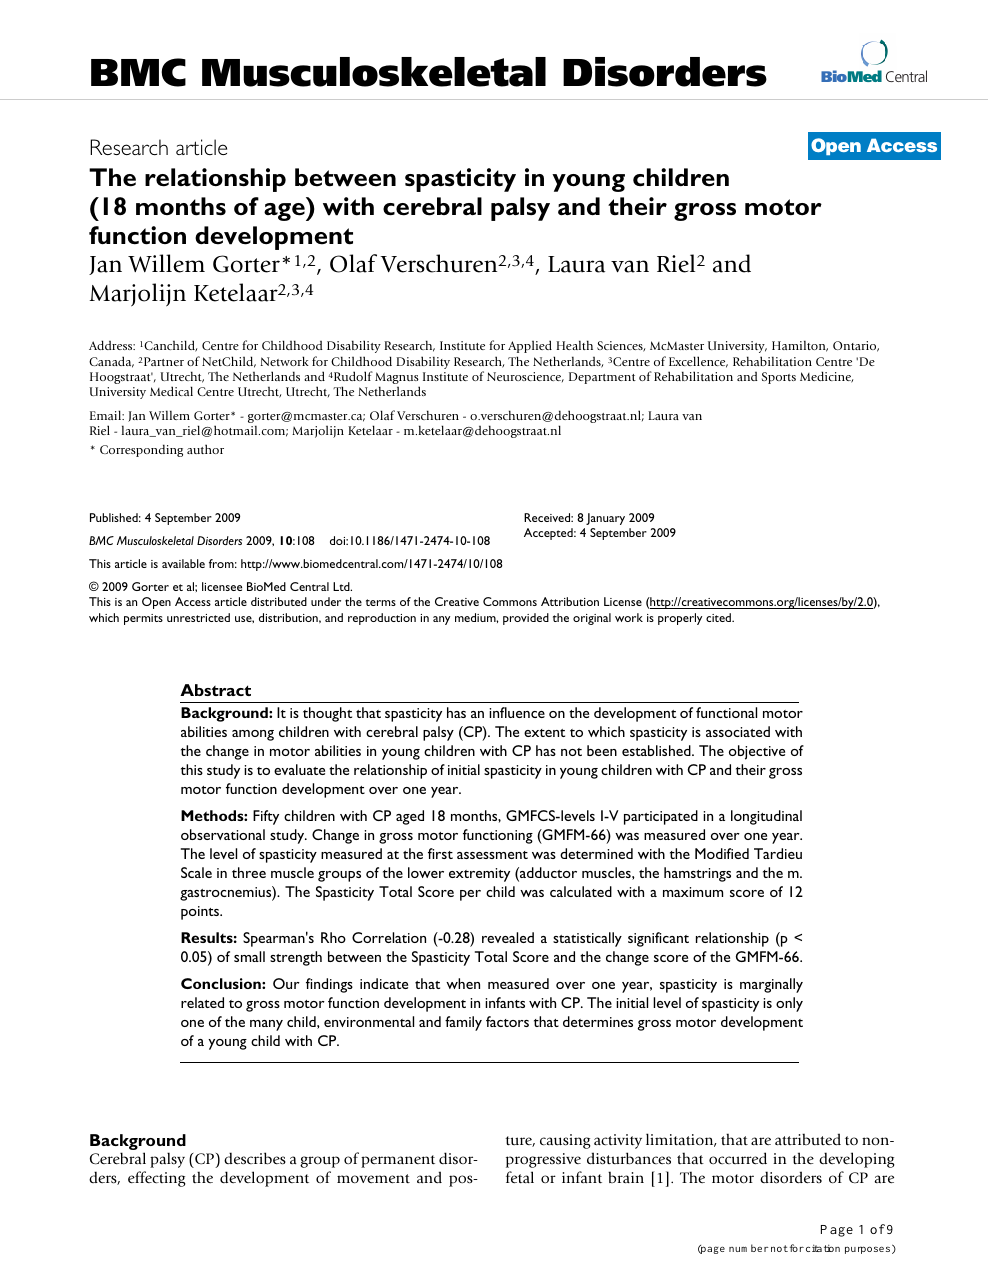 The relationship between spasticity in young children (18